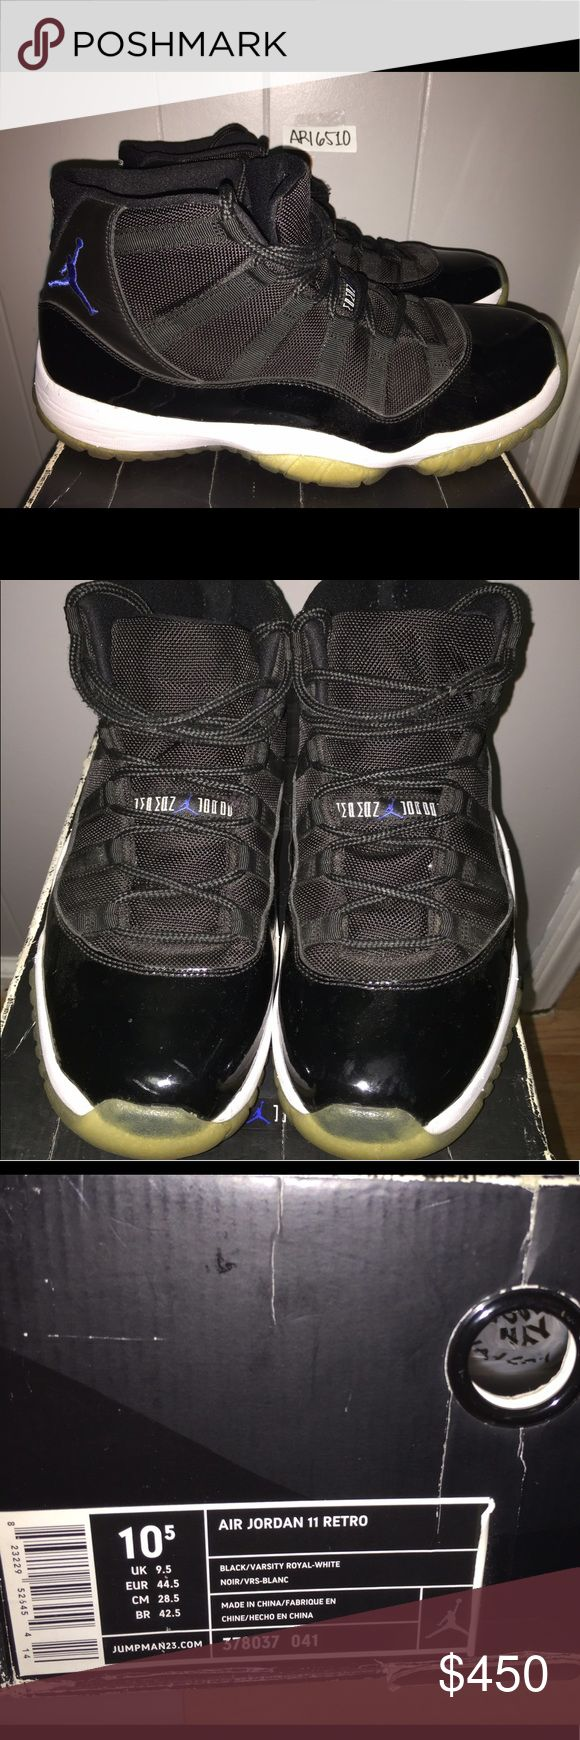 Jordan XI Spacejams SZ 10.5 Jordan XI Space Jams in Sz 10.5. Jordan Shoes Sneakers